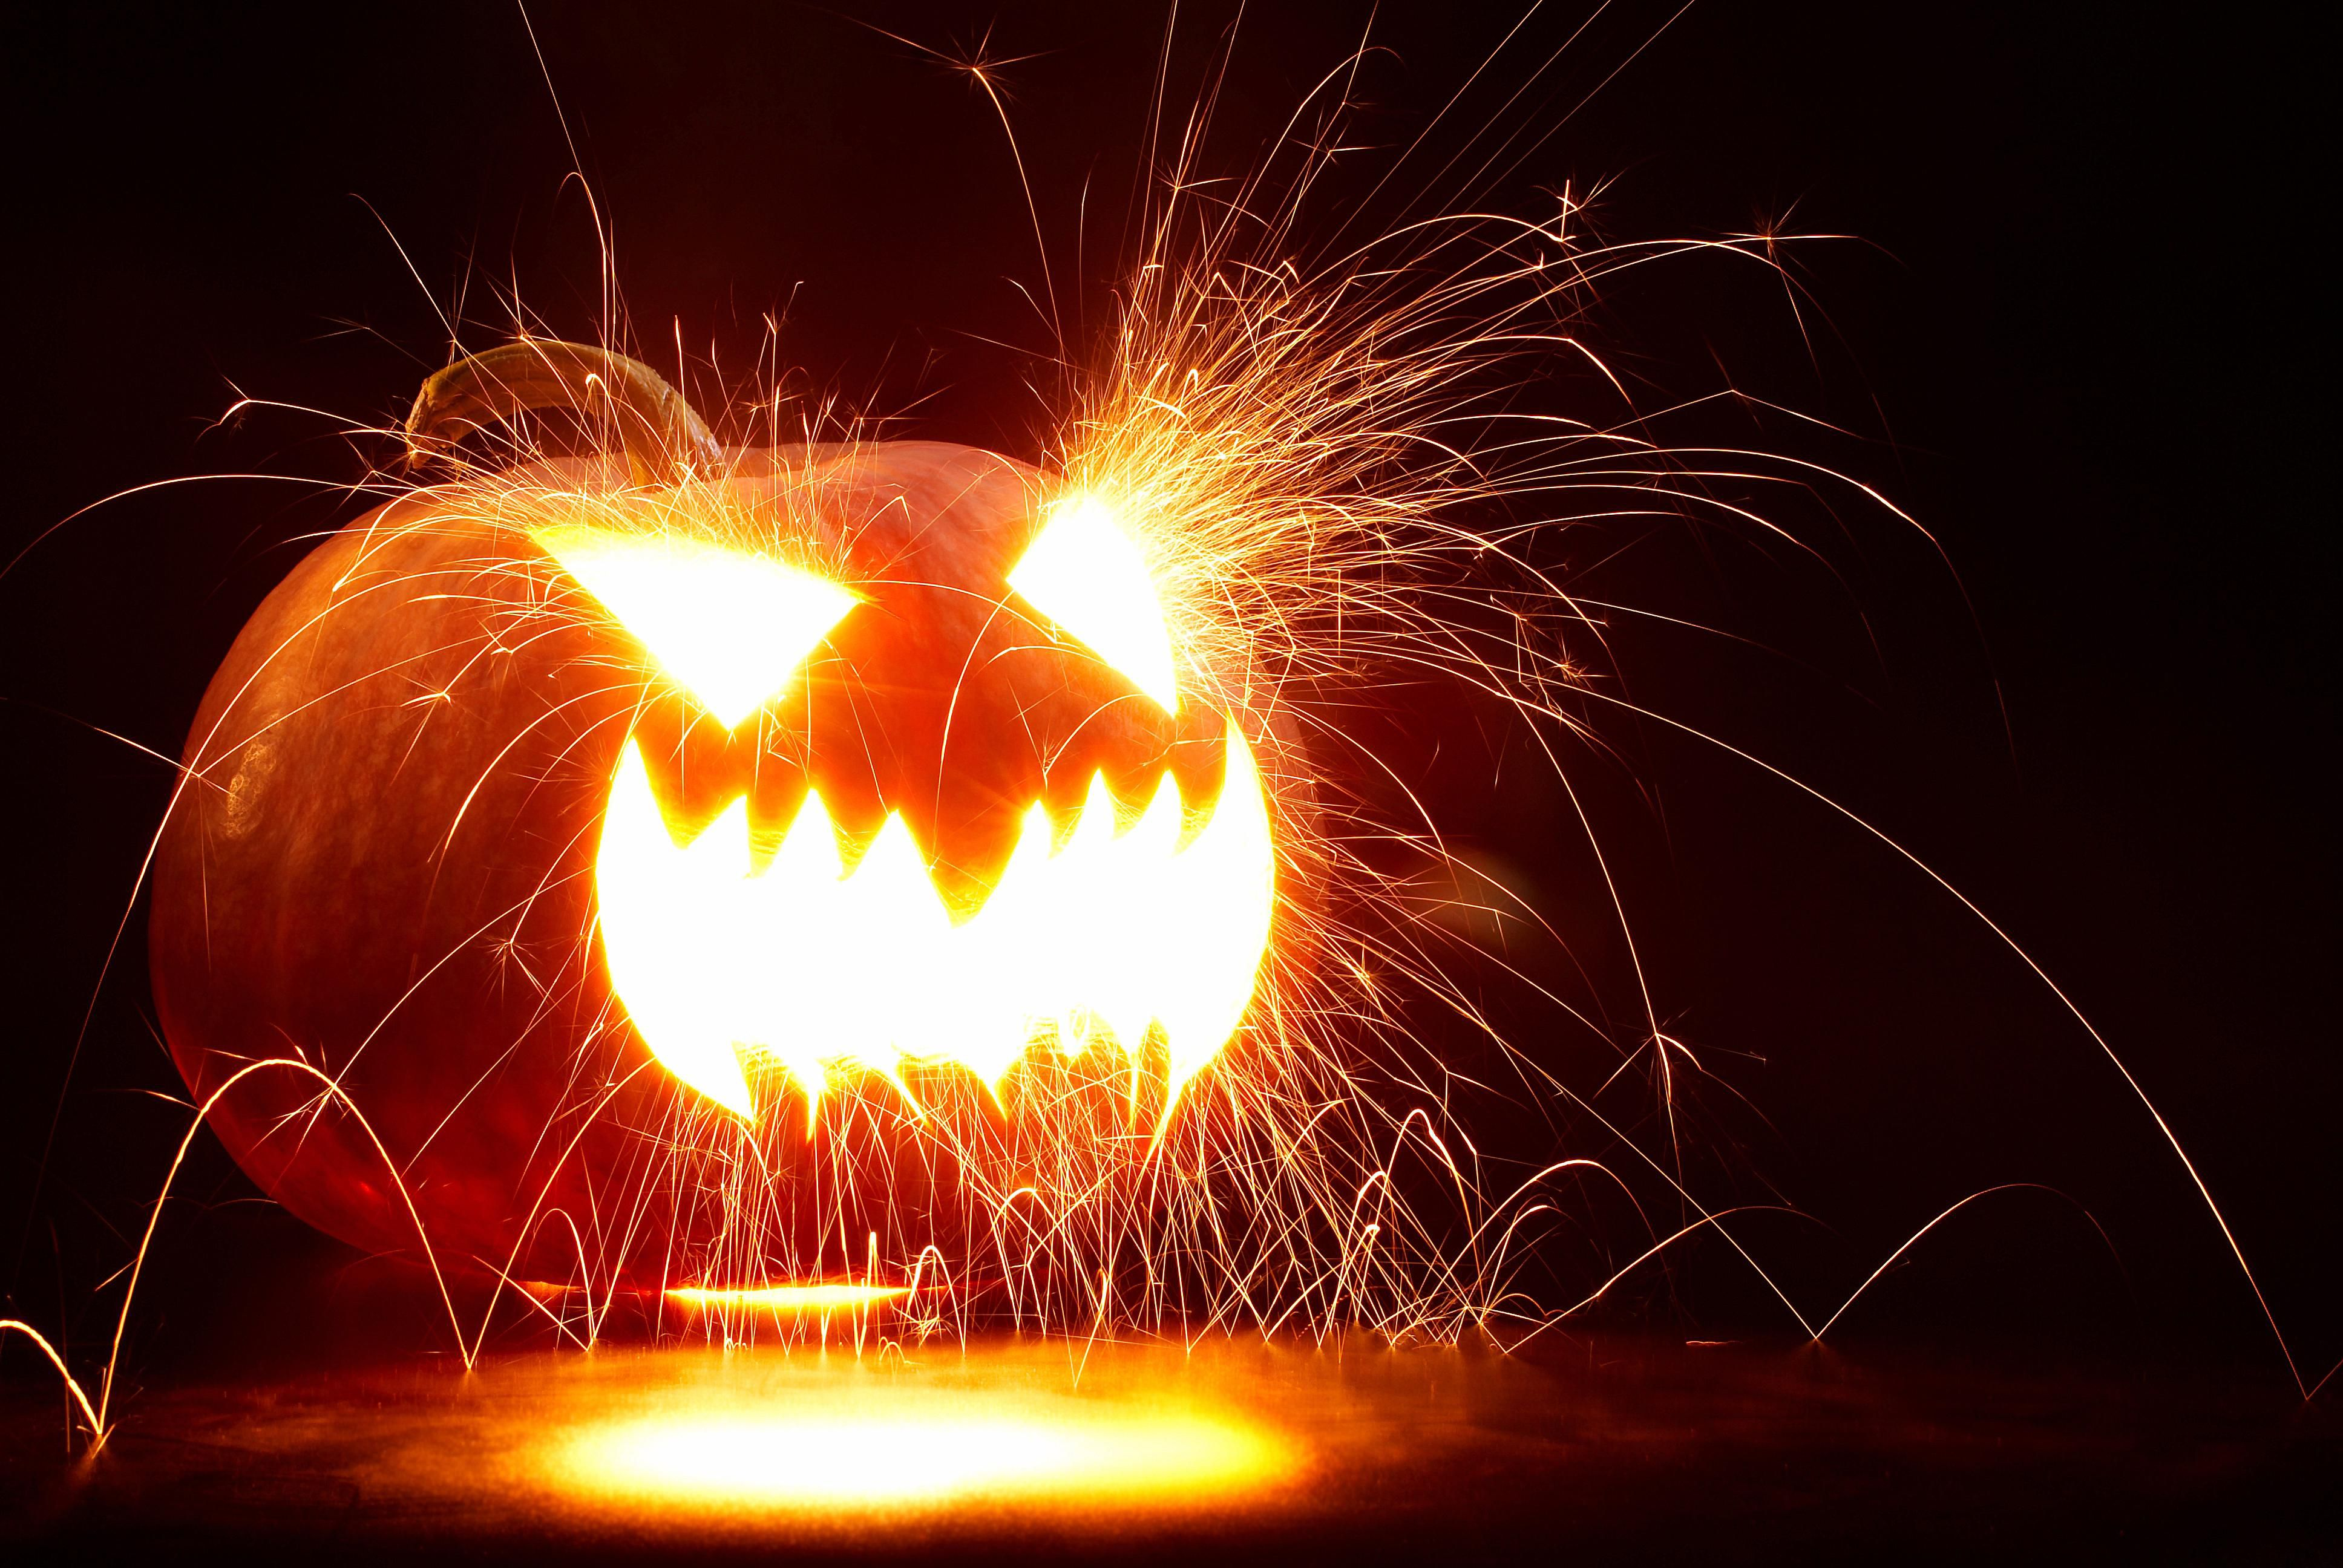 Igniting acetylene gas produced by a chemical reaction blows the face out of a pumpkin.